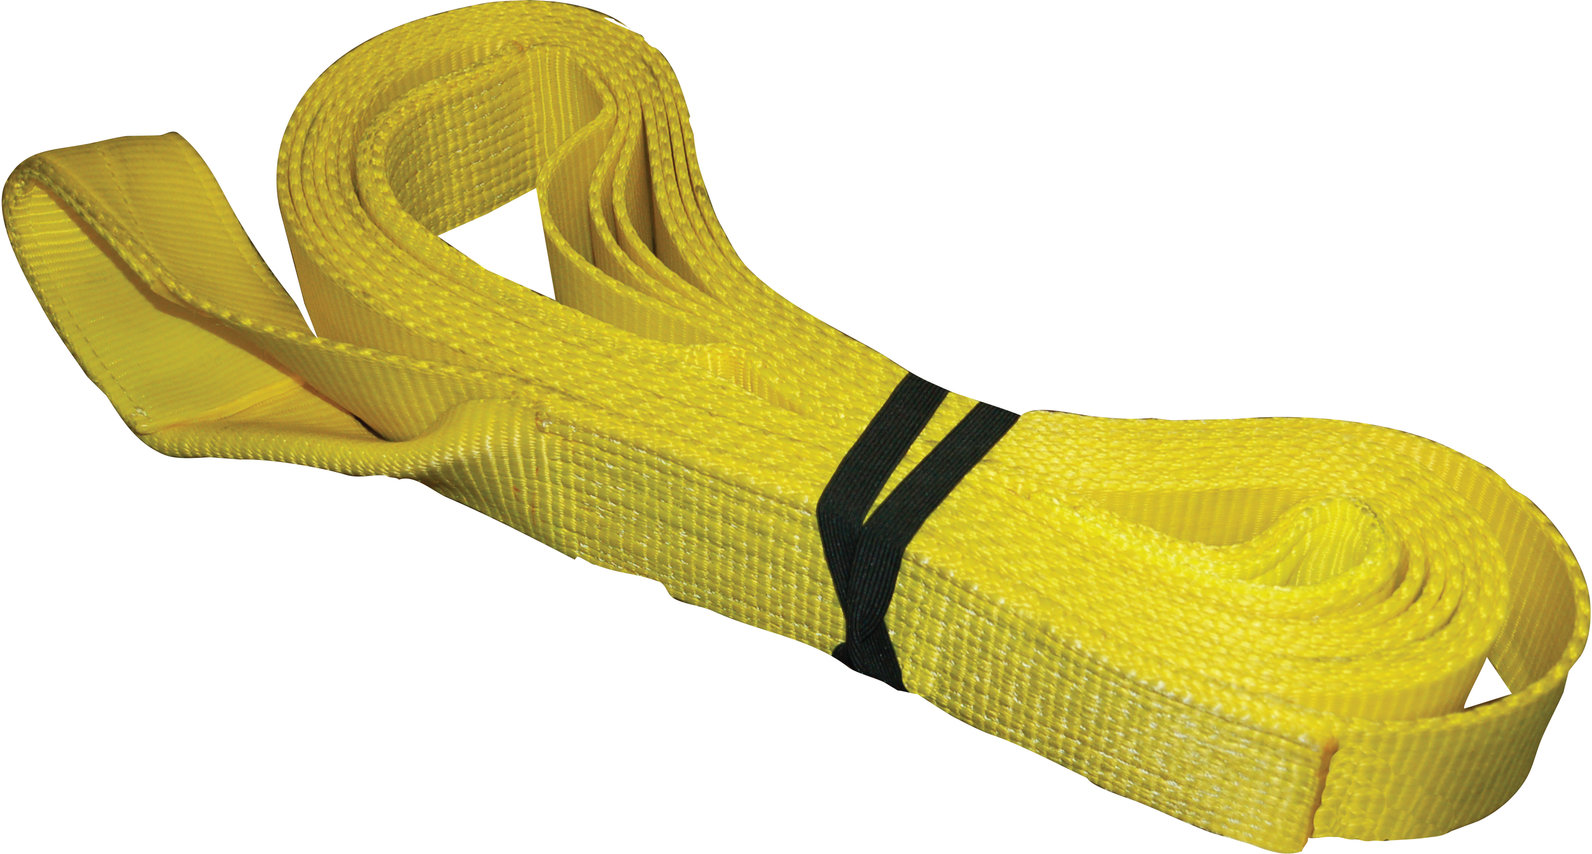 Recovery Straps - Nylon 2 Ply w/ Reinforced Eyes